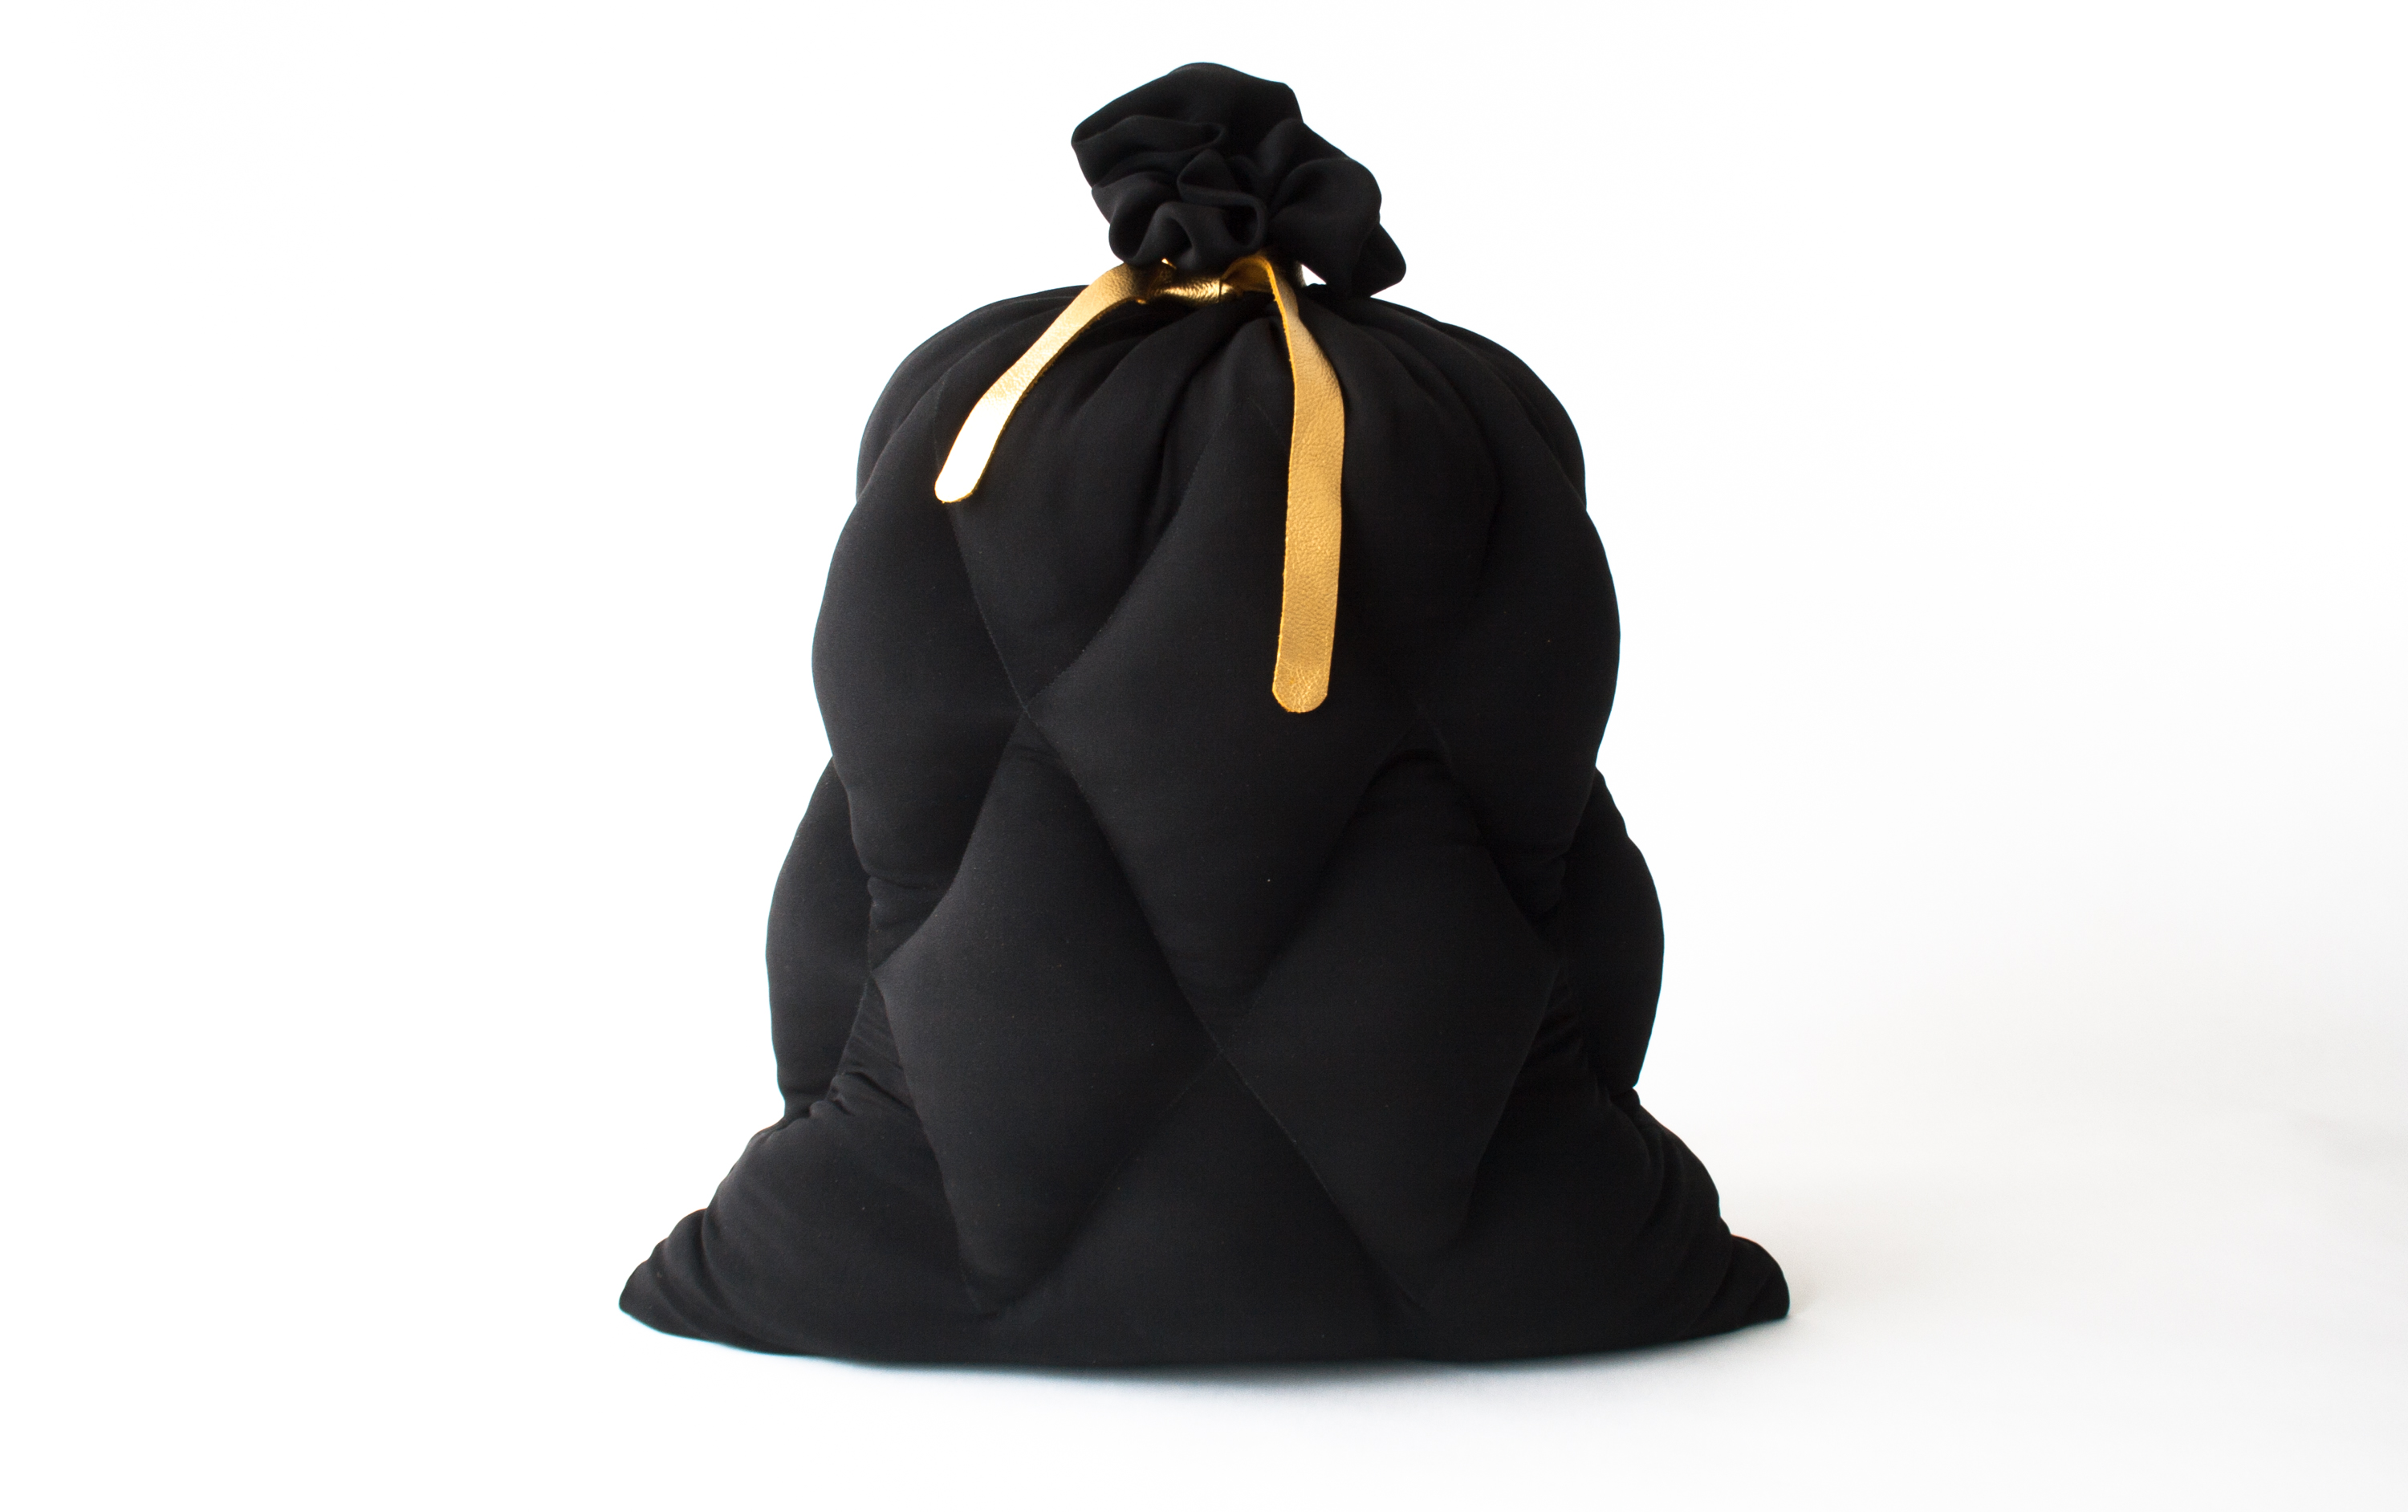 Limited Garbage, a limited edition silk pillow in the shape of a garbage bag, designed by Jarle Veldman